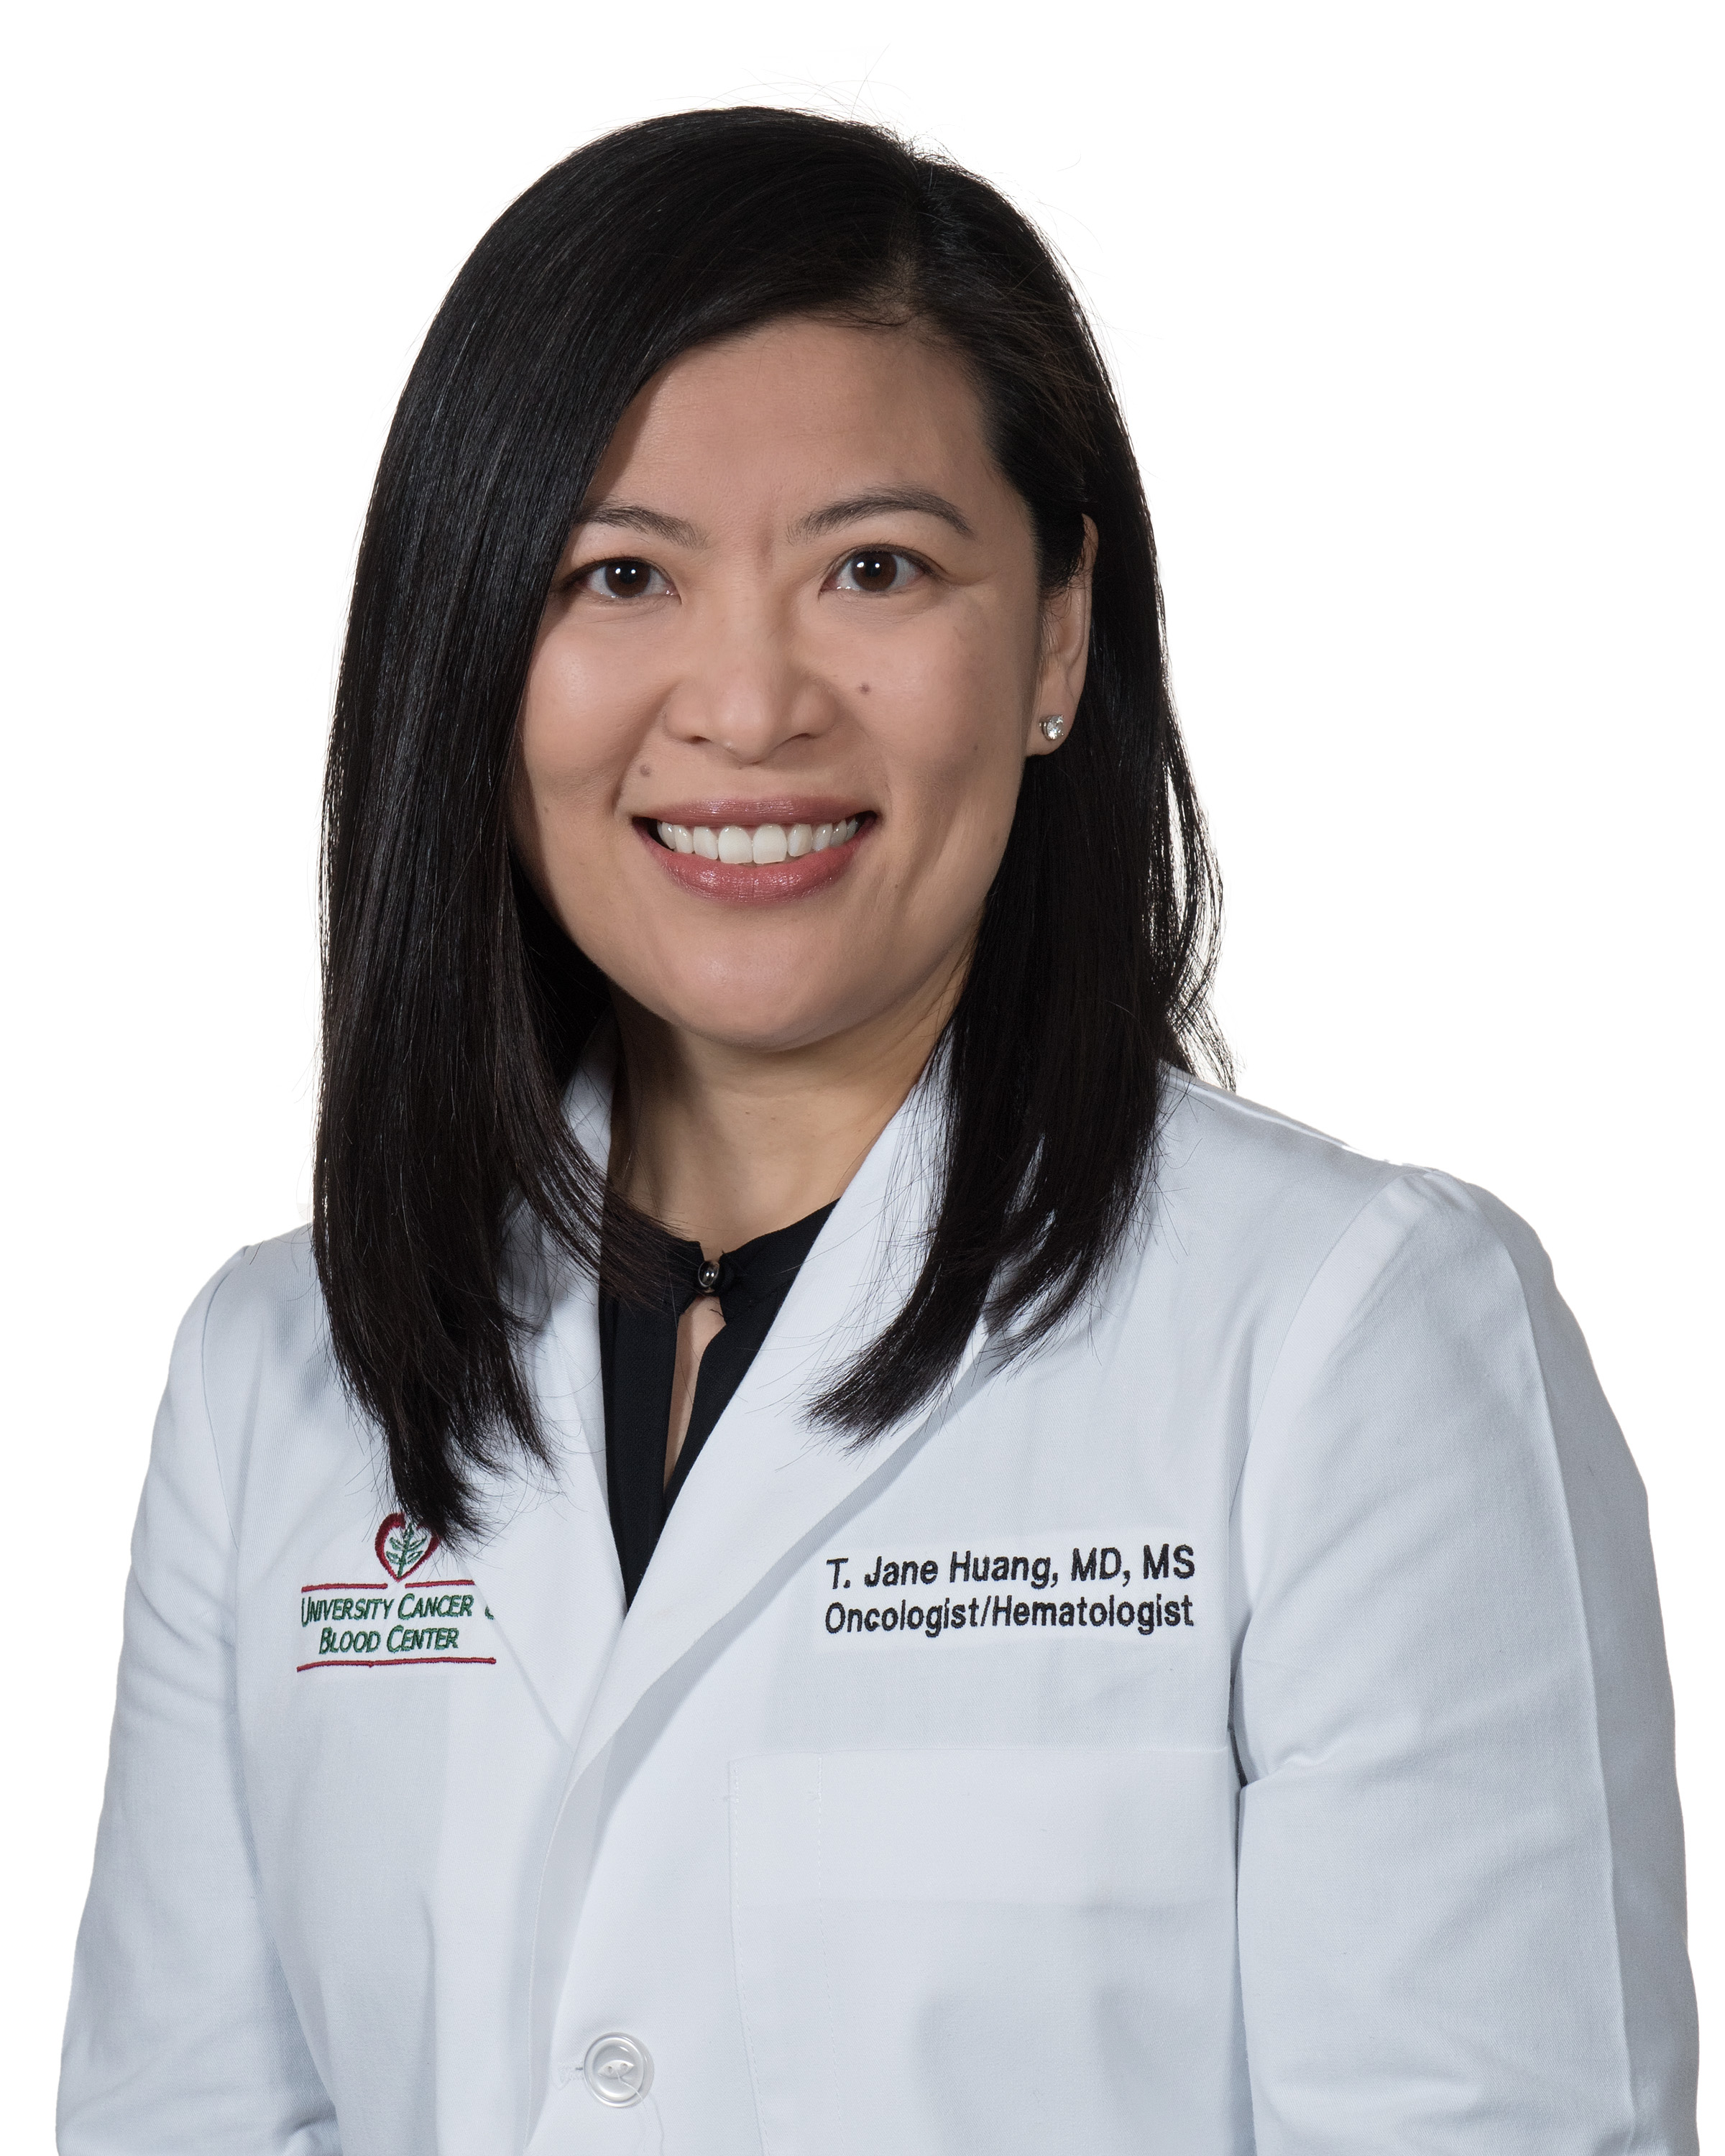 T. Jane Huang, MD, MS